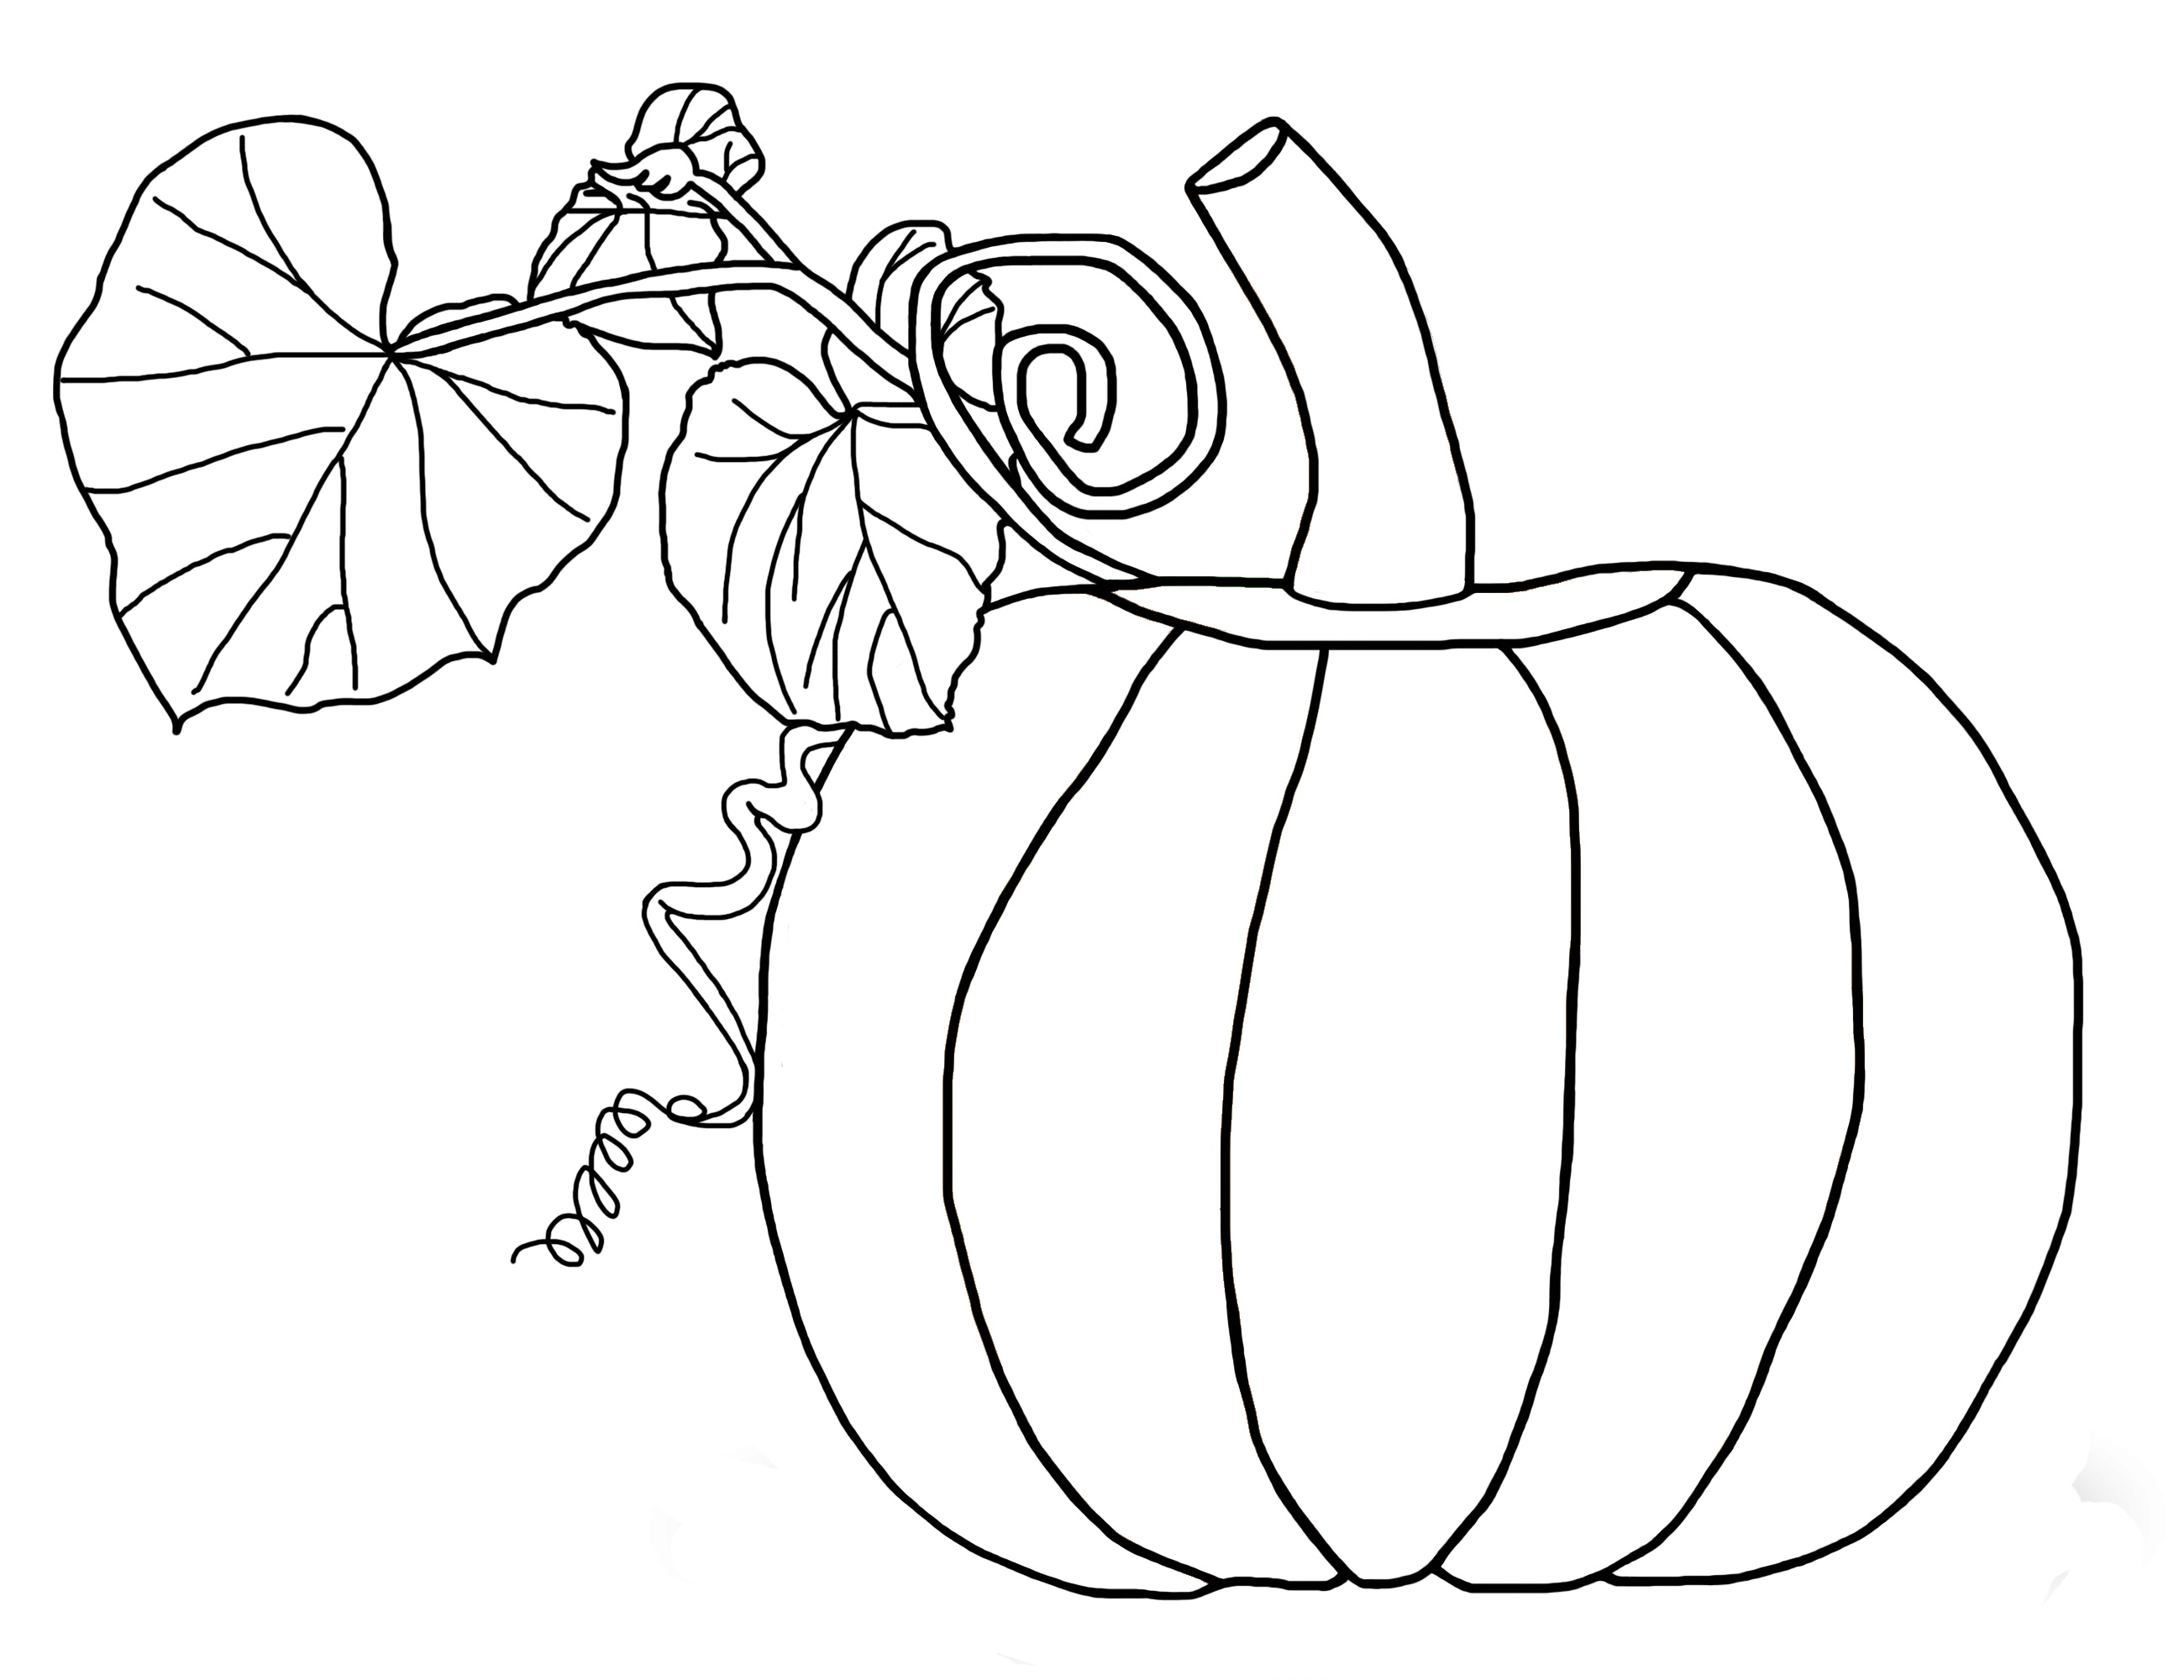 Coloring Book for Kids Pumpkins